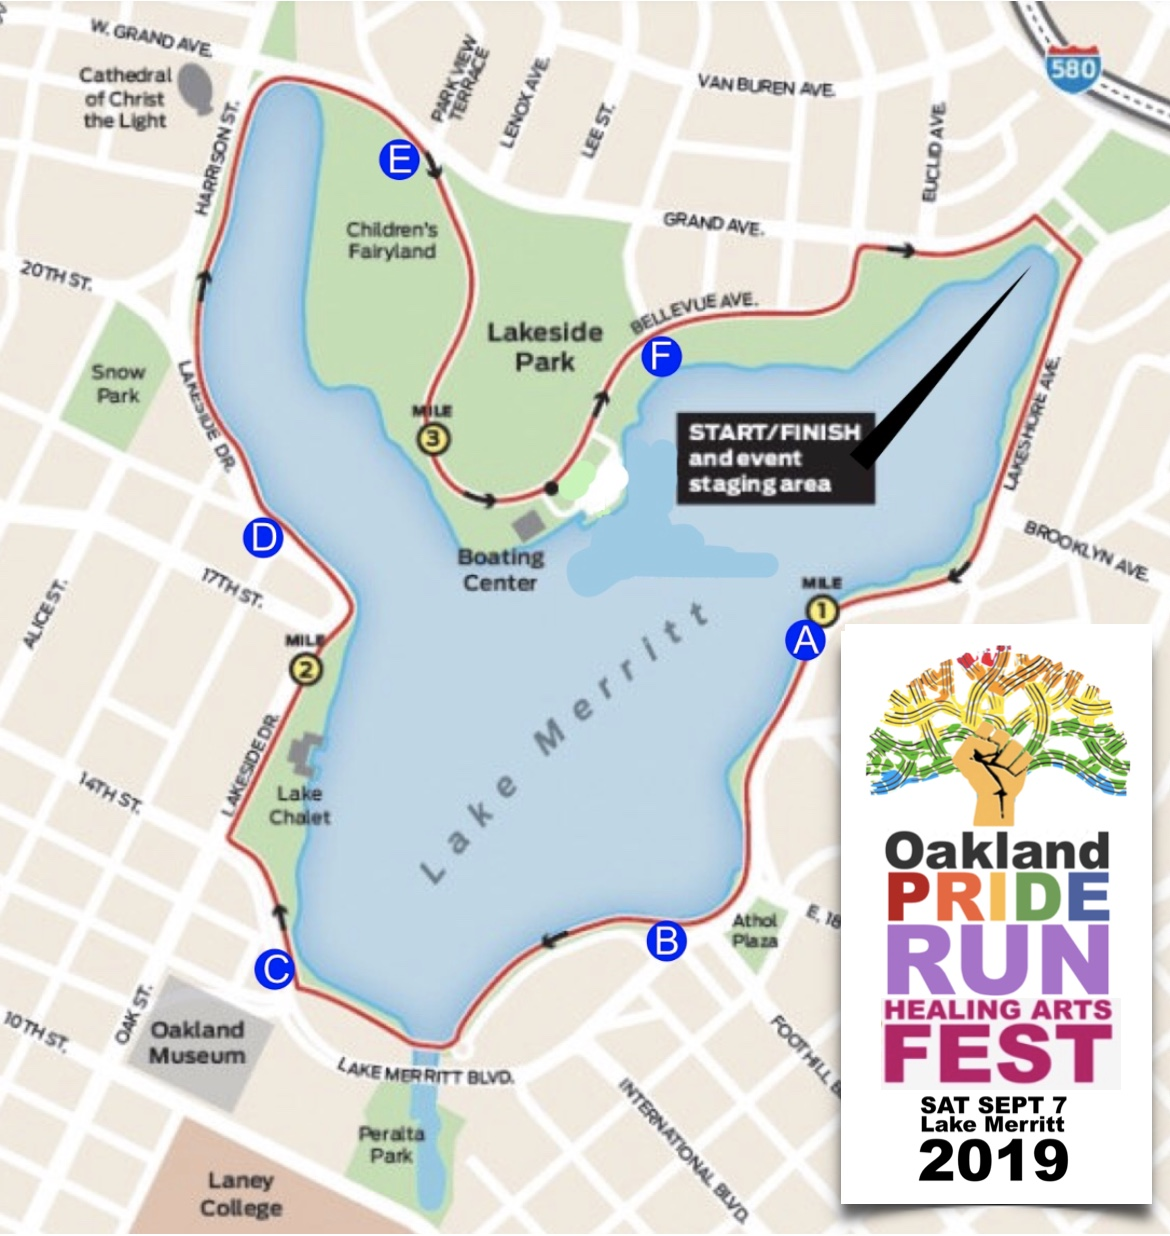 2019 Oakland Pride Run Simple Map and Logo